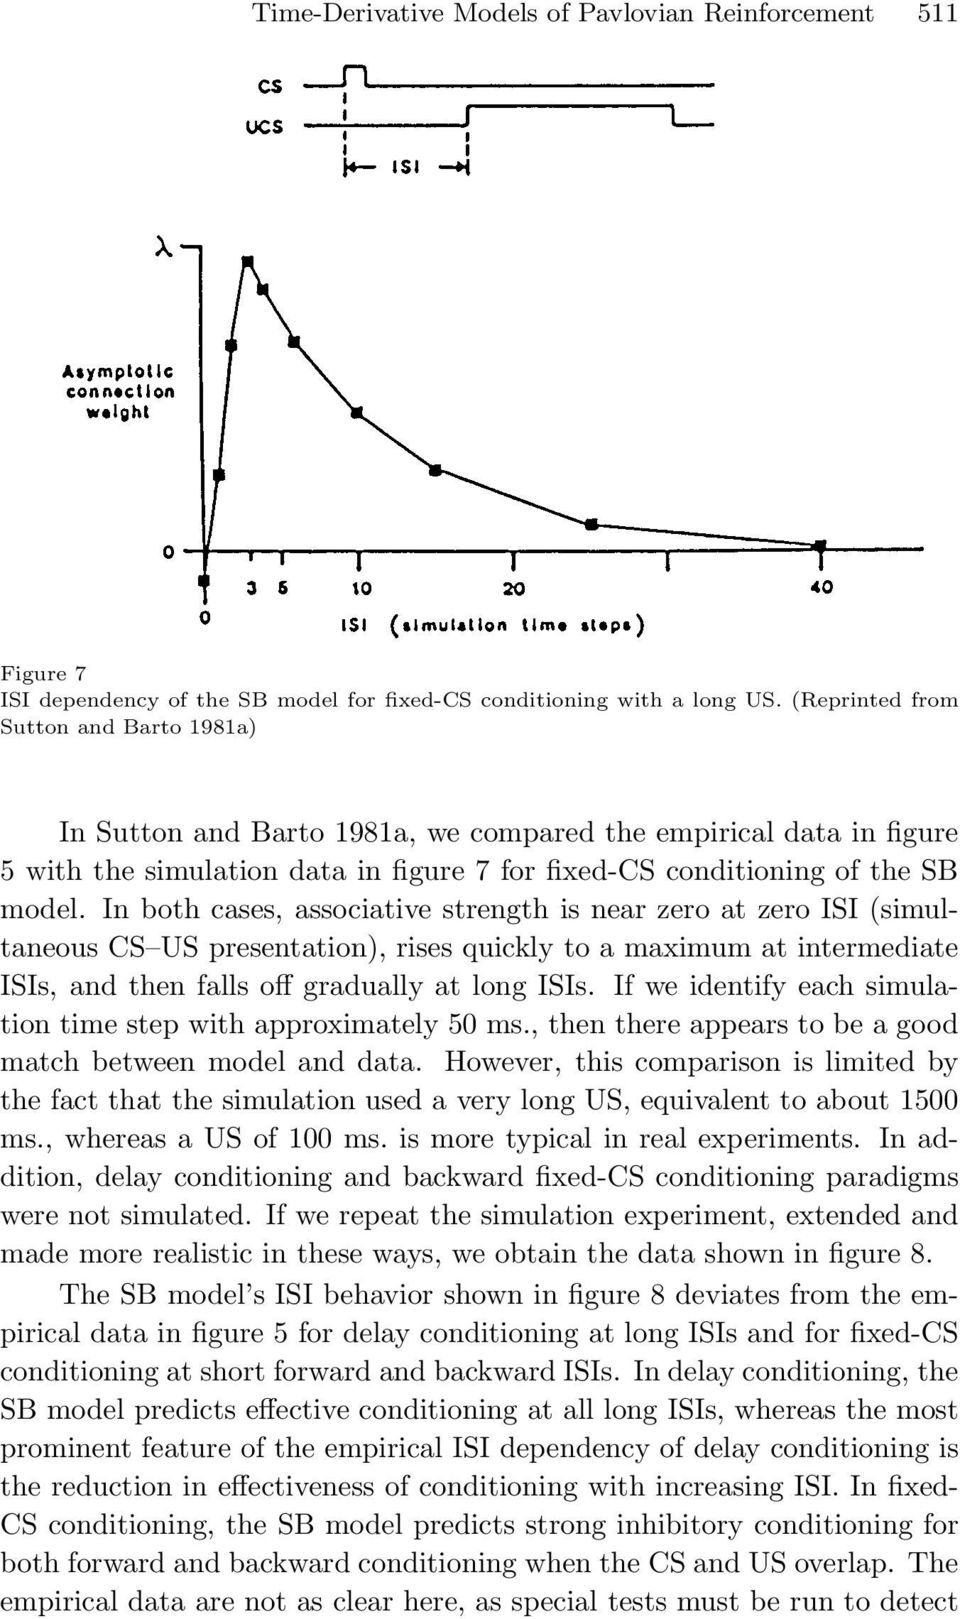 In both cases, associative strength is near zero at zero ISI (simultaneous CS US presentation), rises quickly to a maximum at intermediate ISIs, and then falls off gradually at long ISIs.